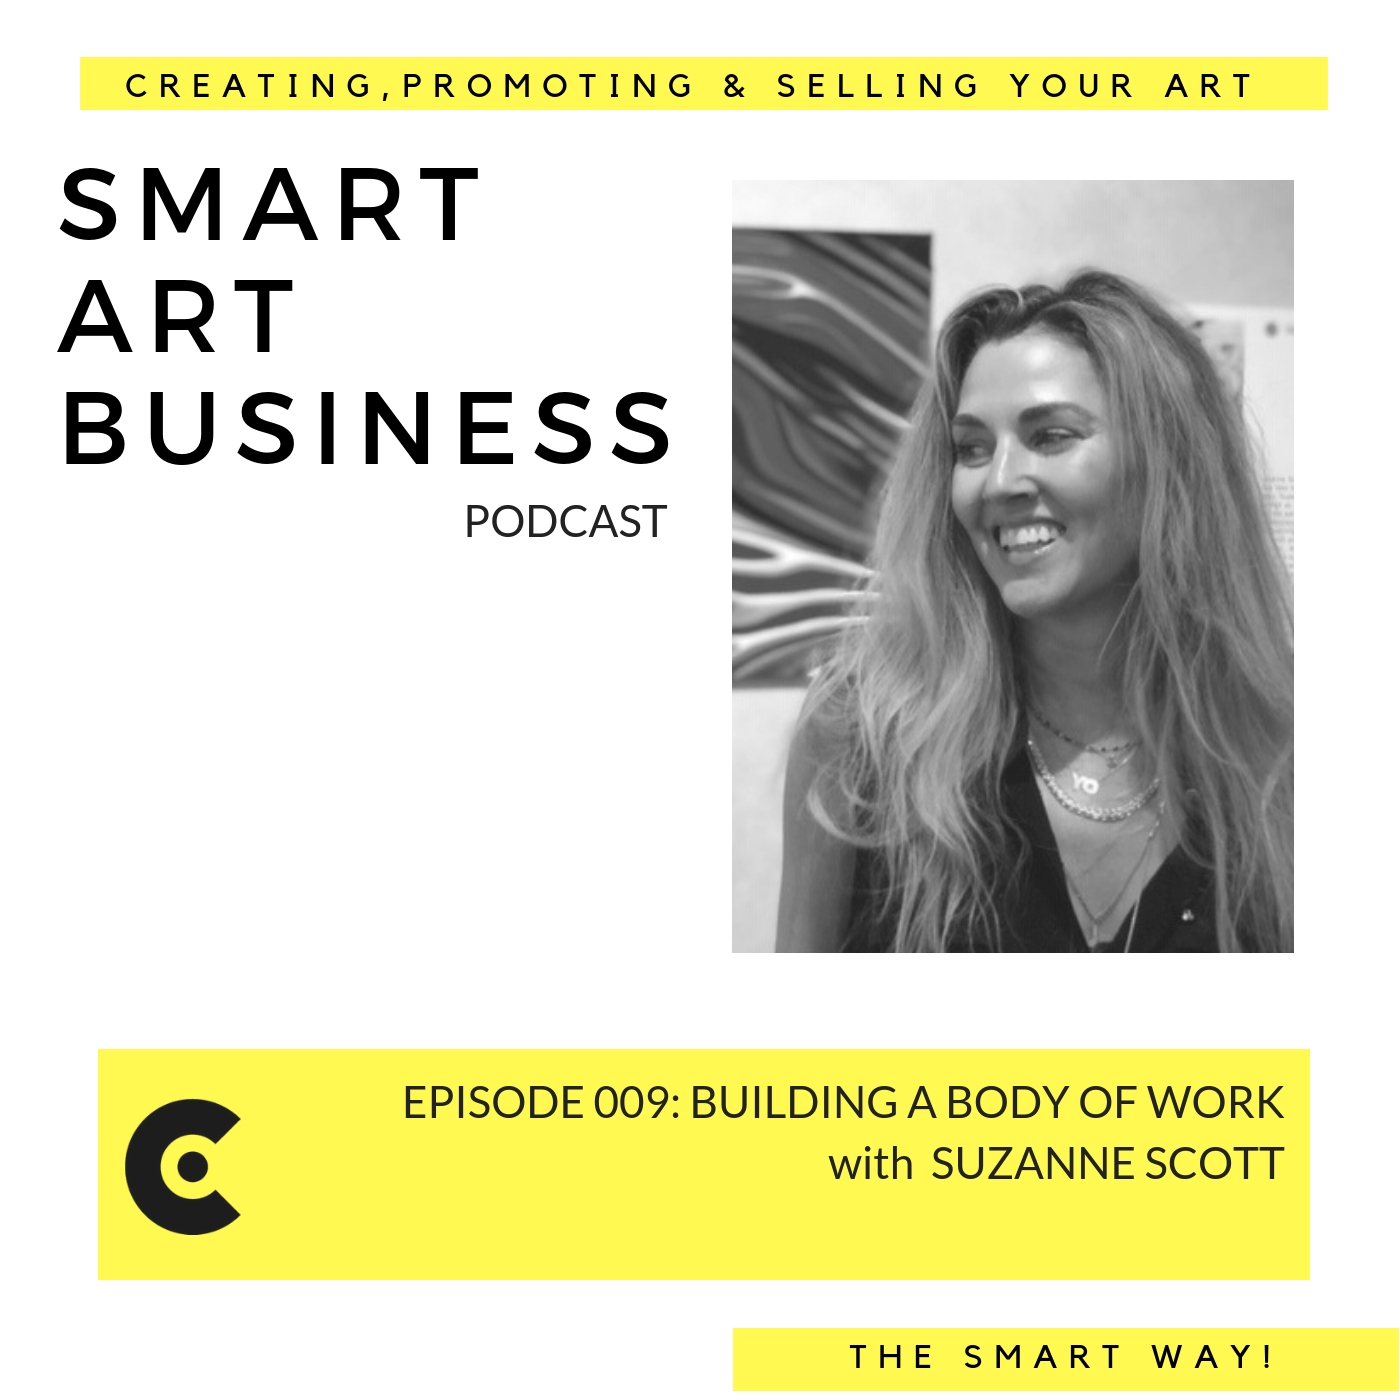 Building a Body of Work with Suzanne Scott